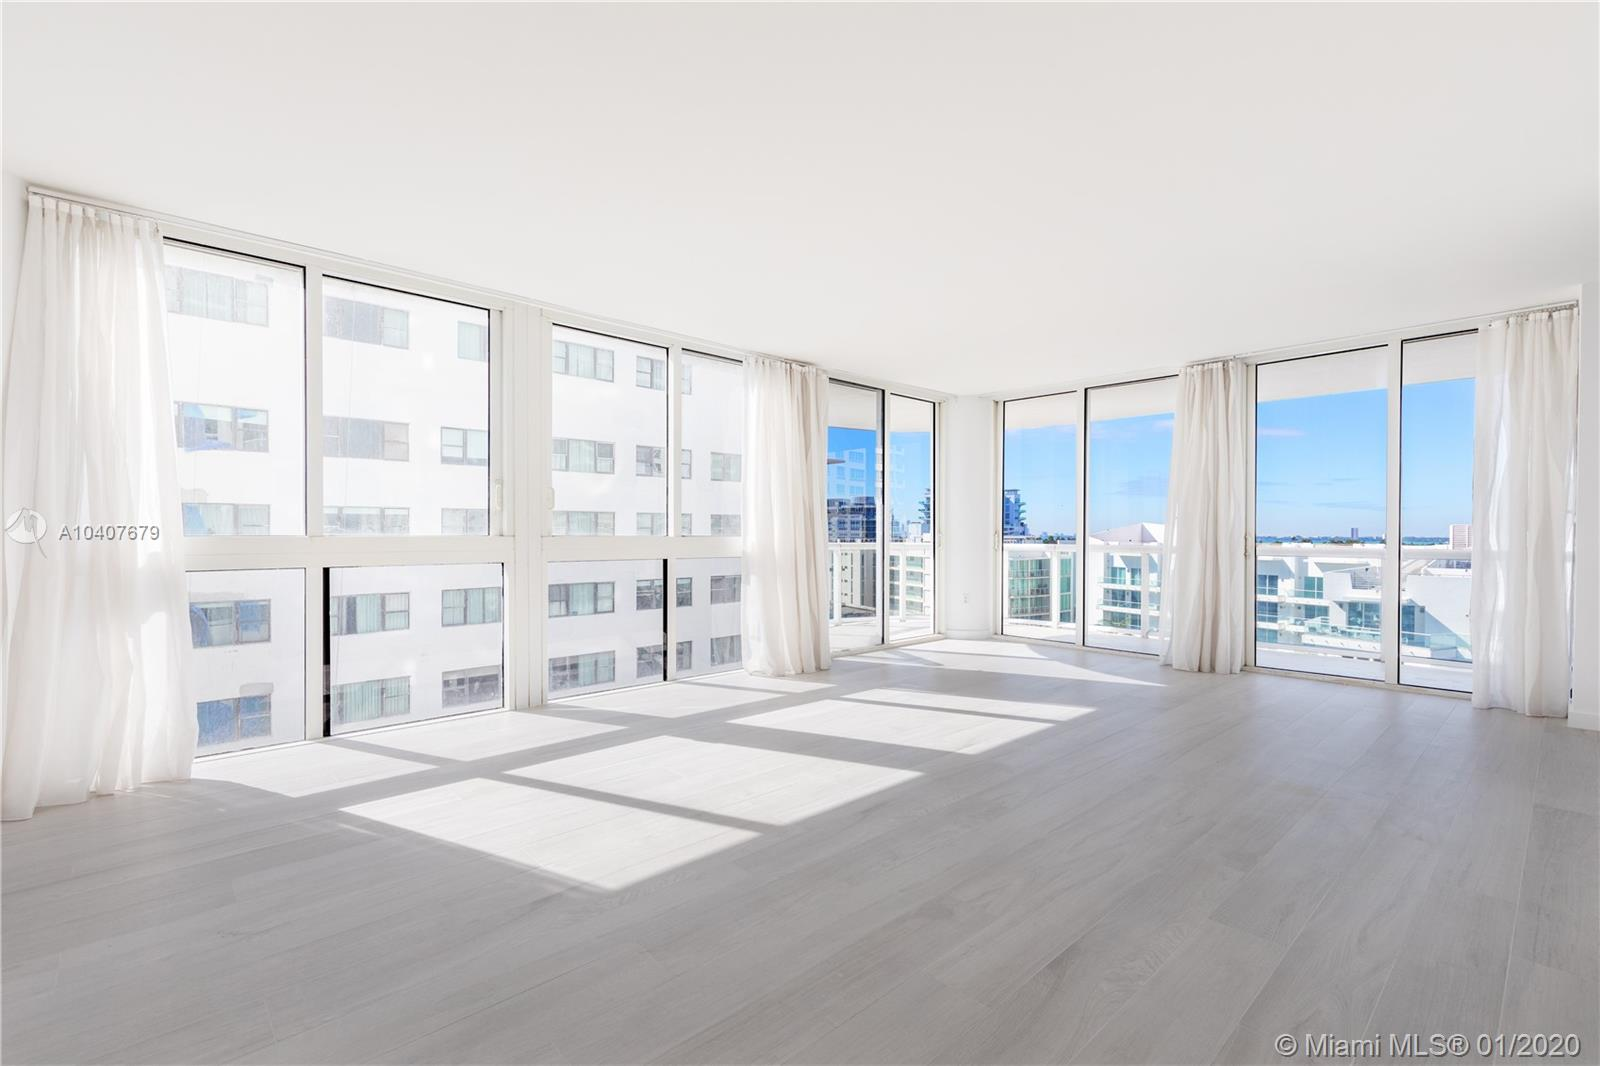 Photo of Akoya Apt 807